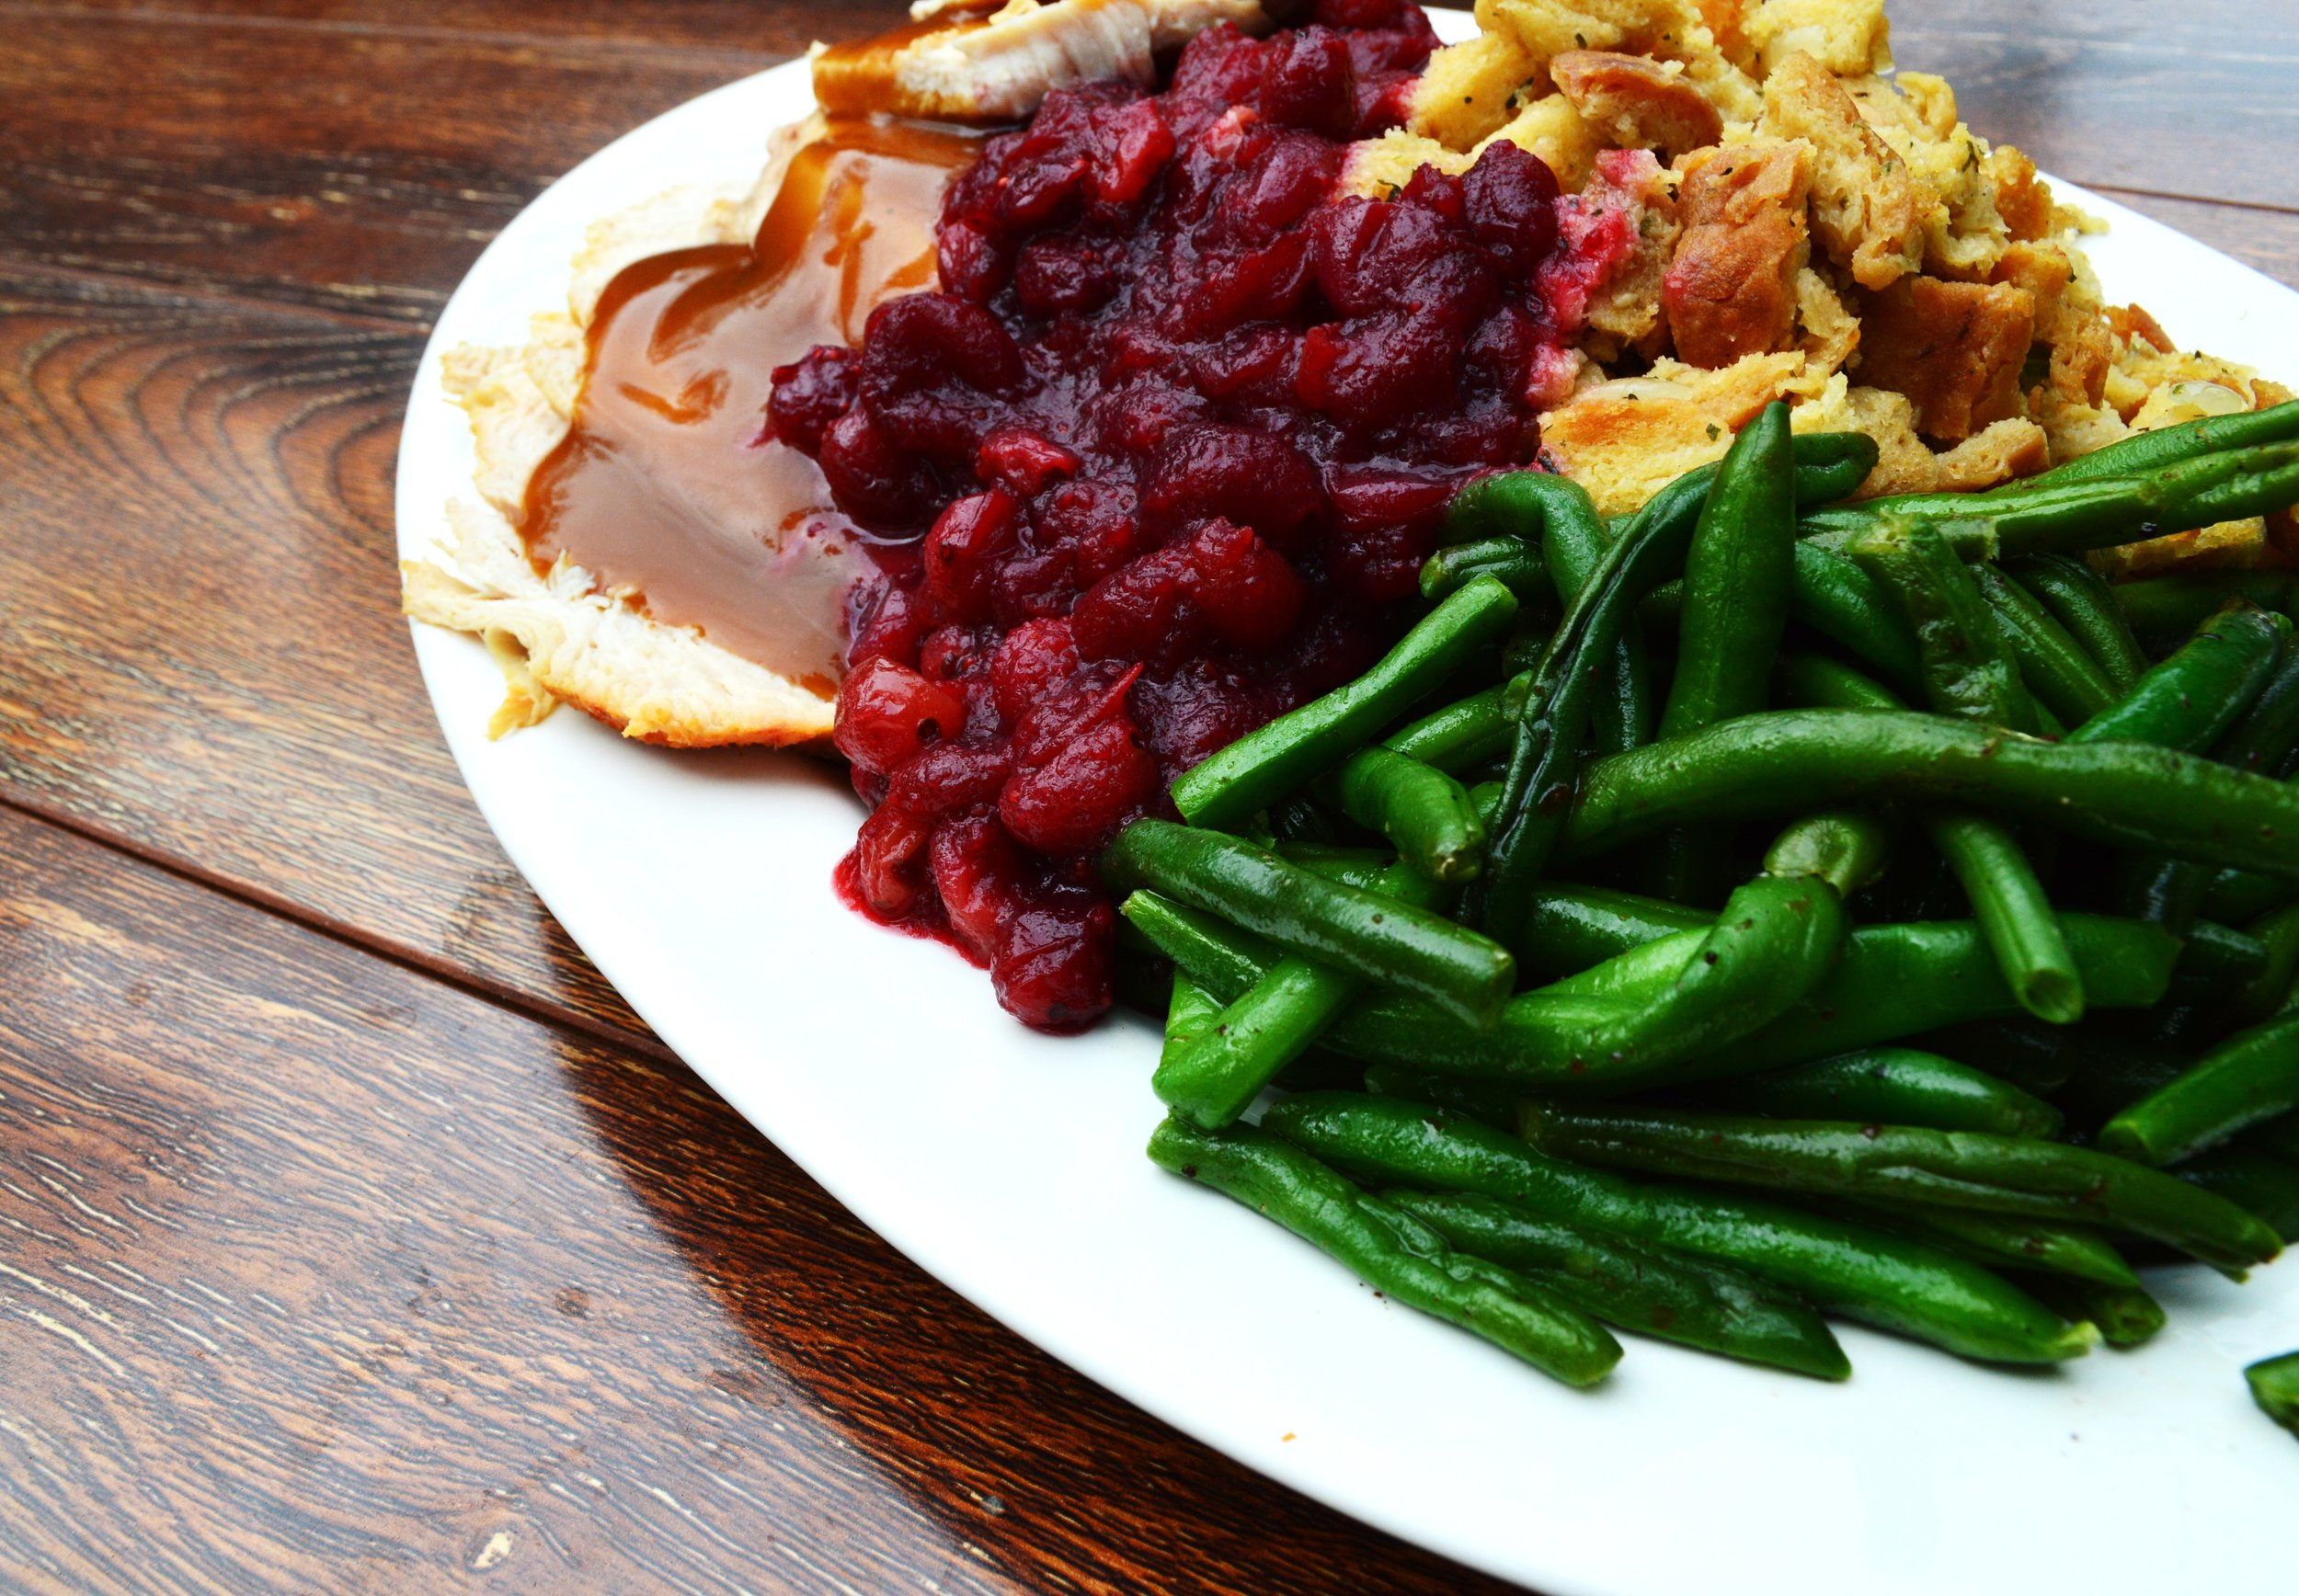 Harvest - Everyone loves a home-cooked meal. Hearth aims to deliver just that. Featuring traditional favorite comfort foods, Hearth brings a taste of home to the table. The best part: you don't have to do the dishes!